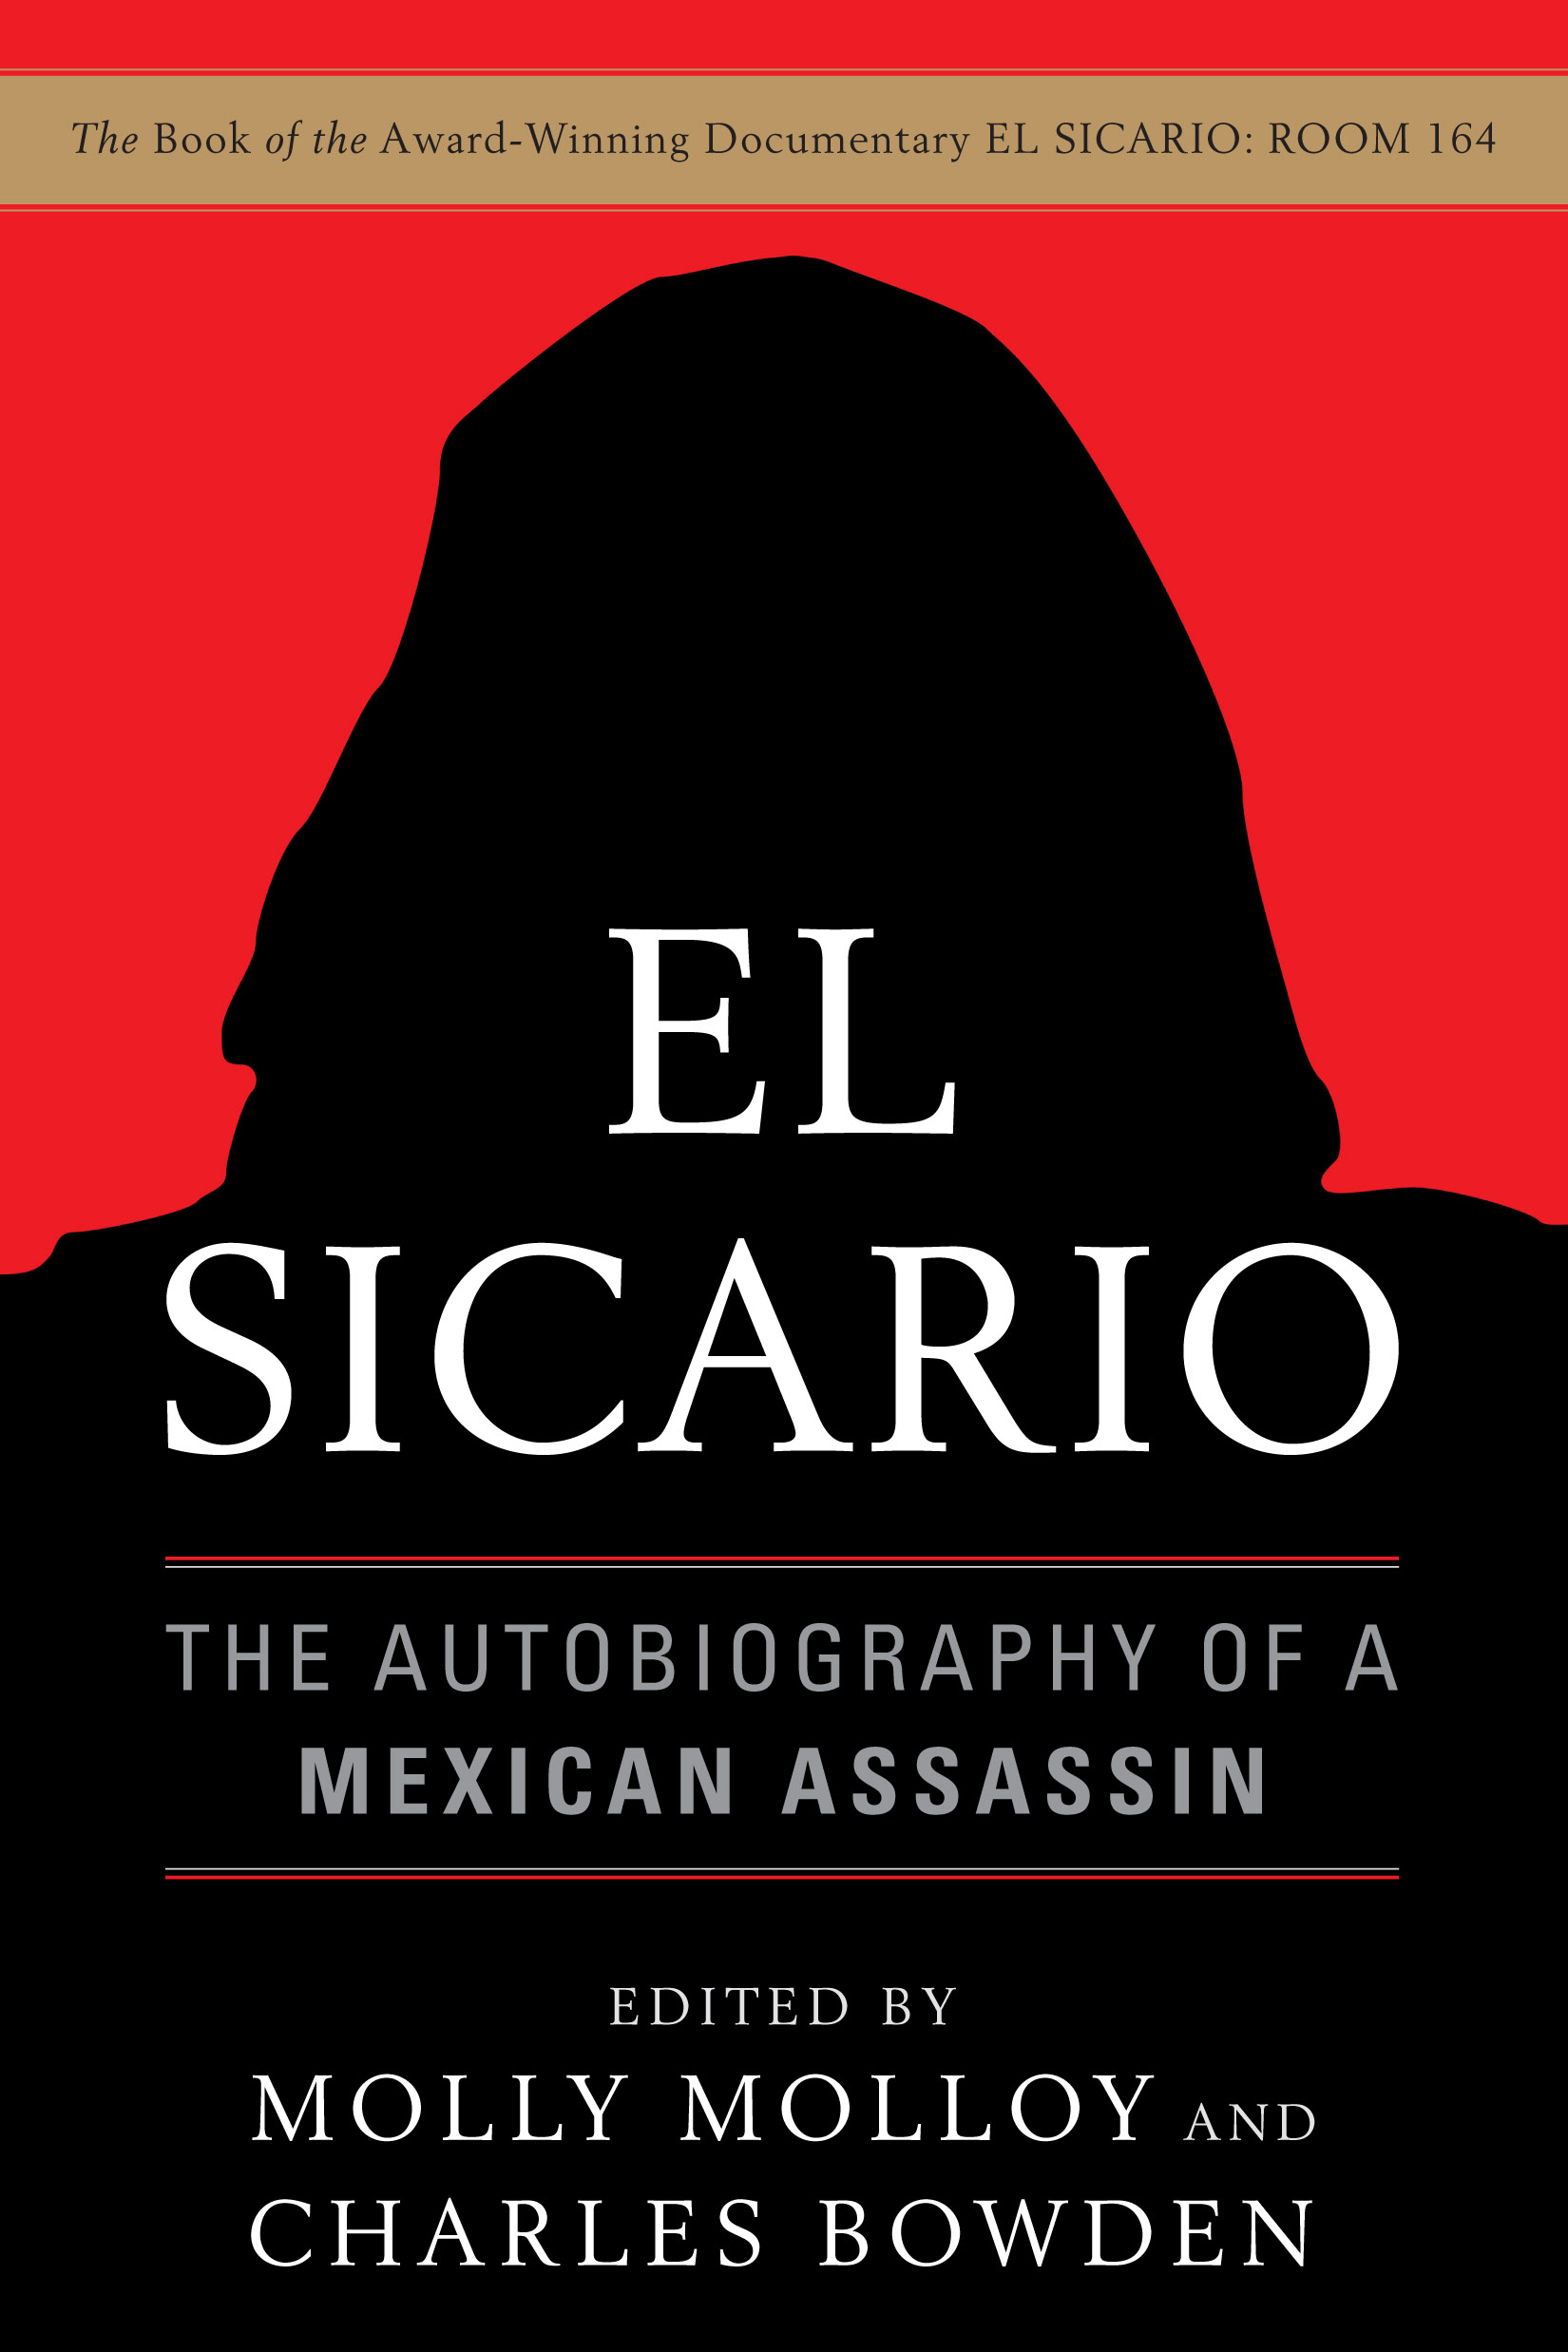 The Chilling Story Of El Sicario | KPBS